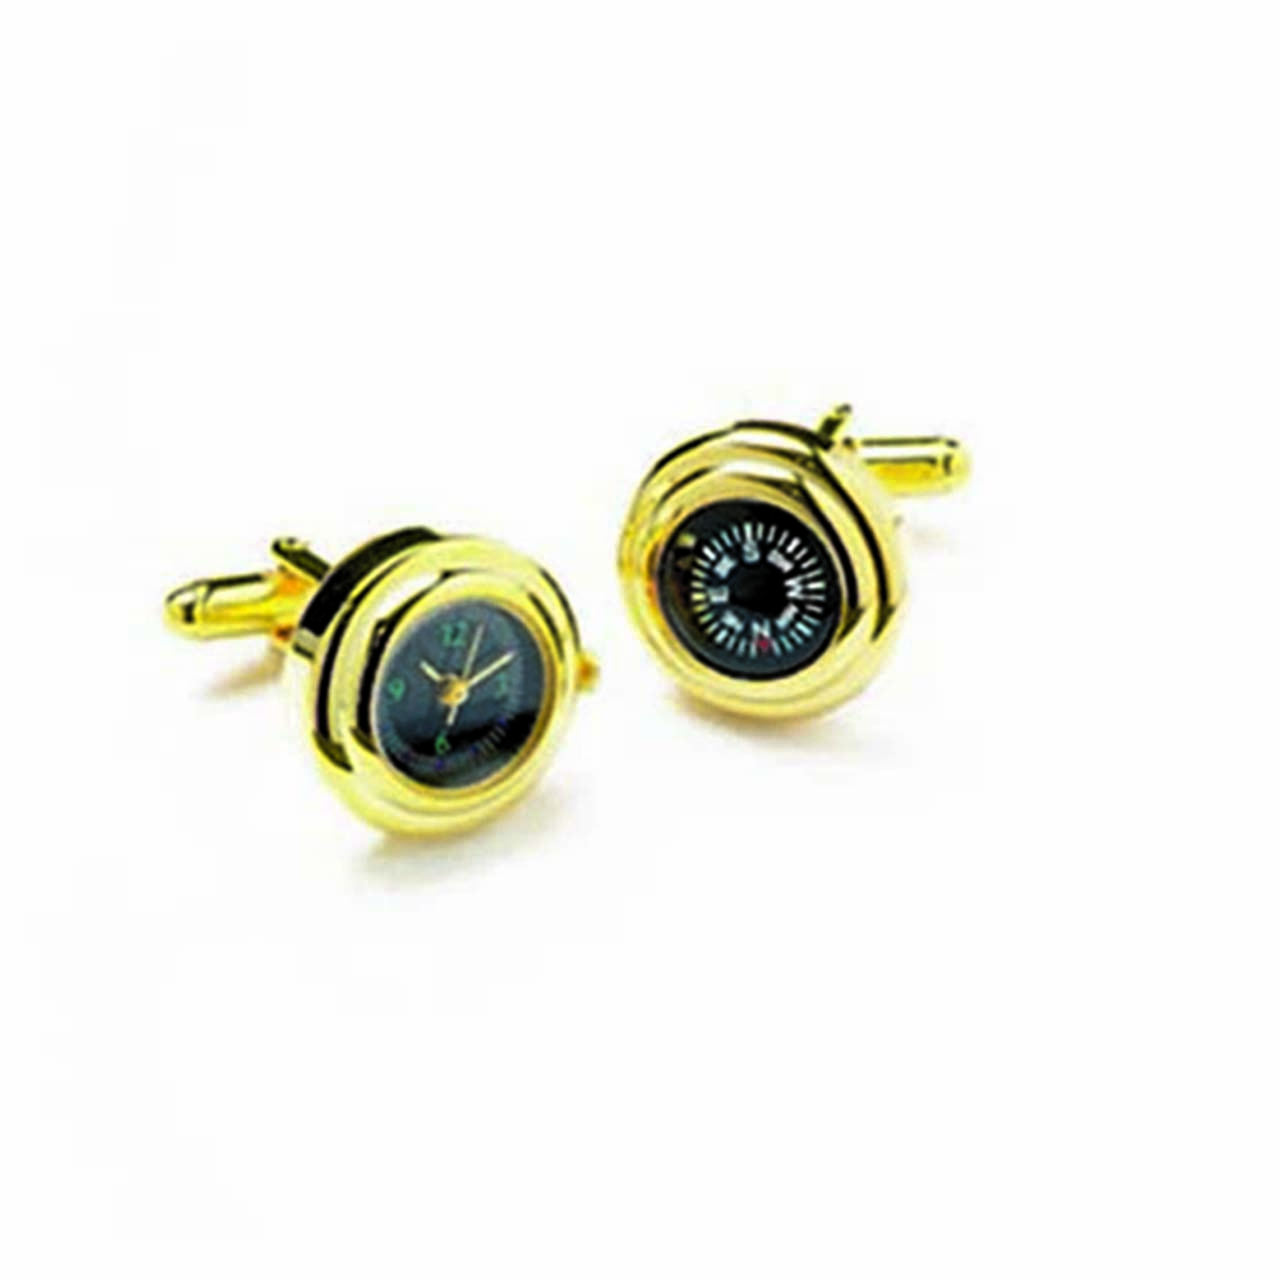 Gold Watch & Compass Cufflinks